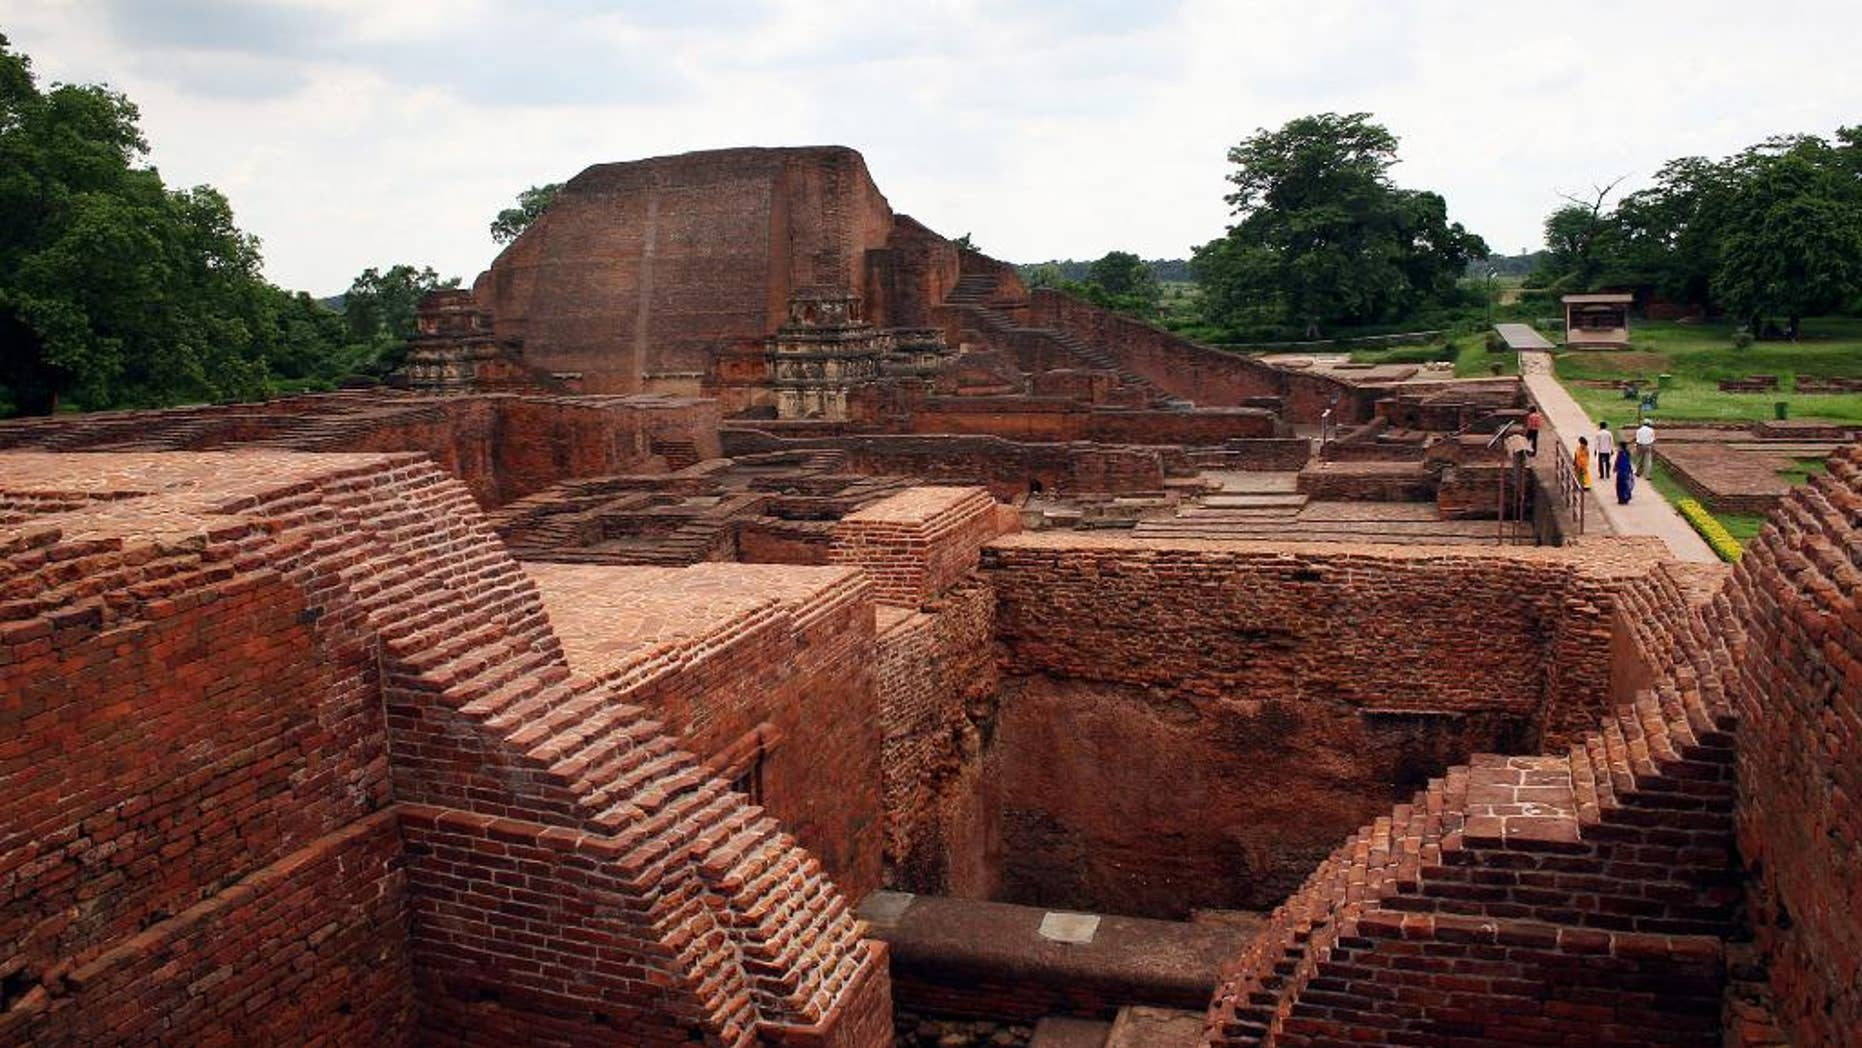 FILE � In this July 5, 2006 file photo, tourists walk at the ruins of the Nalanda University at Nalanda, India. UNESCO has put four new sites on its World Heritage List, including the archaeological site of Nalanda Mahavihara, or Nalanda University, on Friday, July 15, 2016. (AP Photo/Prashant Ravi, File)